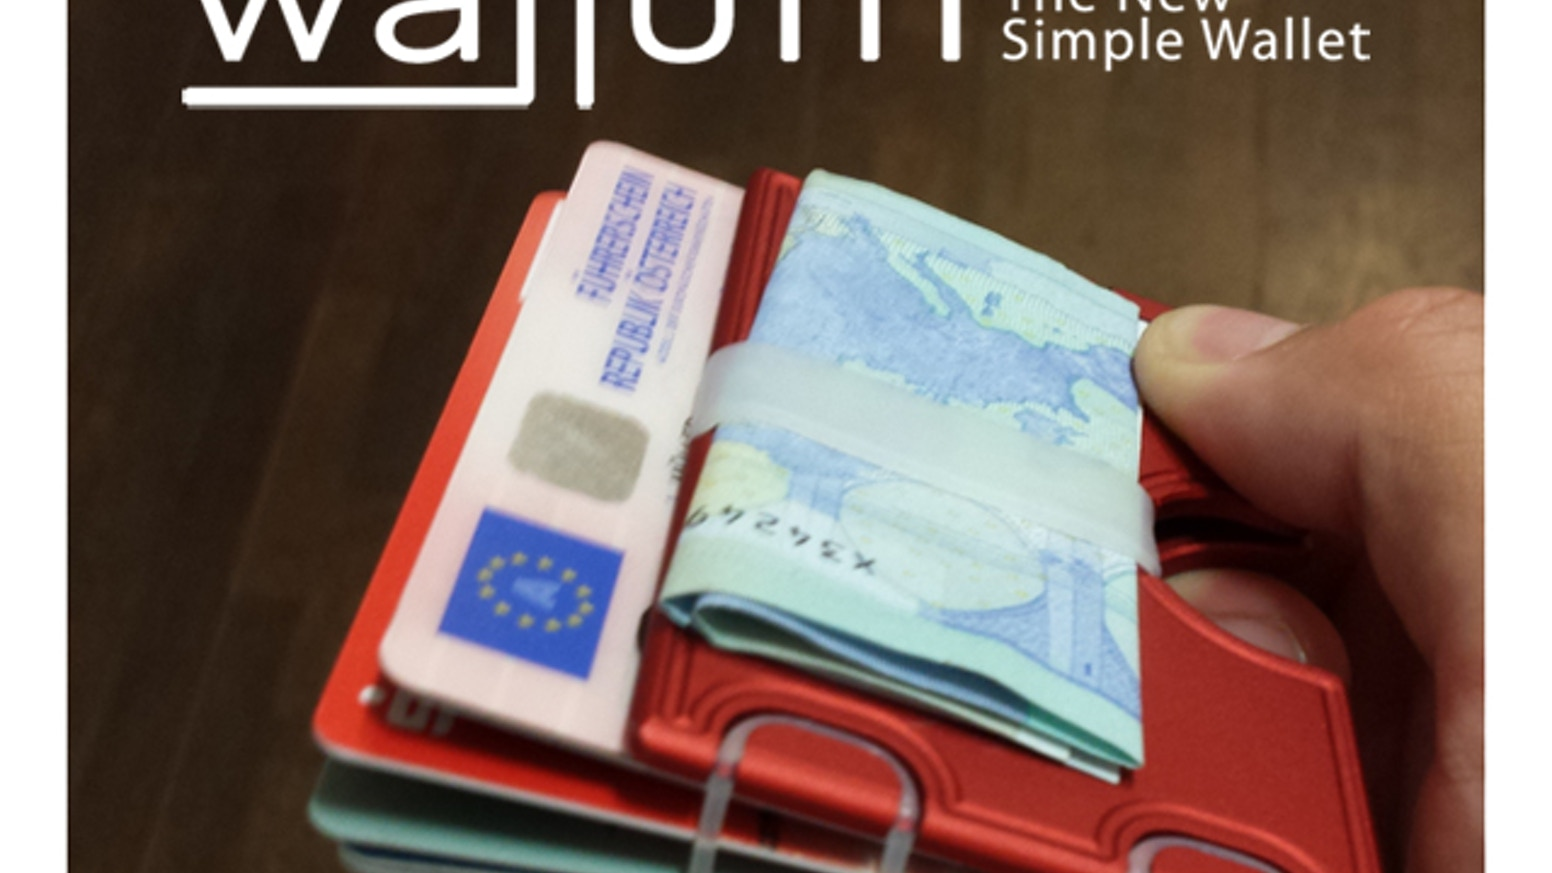 The new simple wallet out of high resistance aluminium designed for your day-to-day life. Made in Austria & Germany.